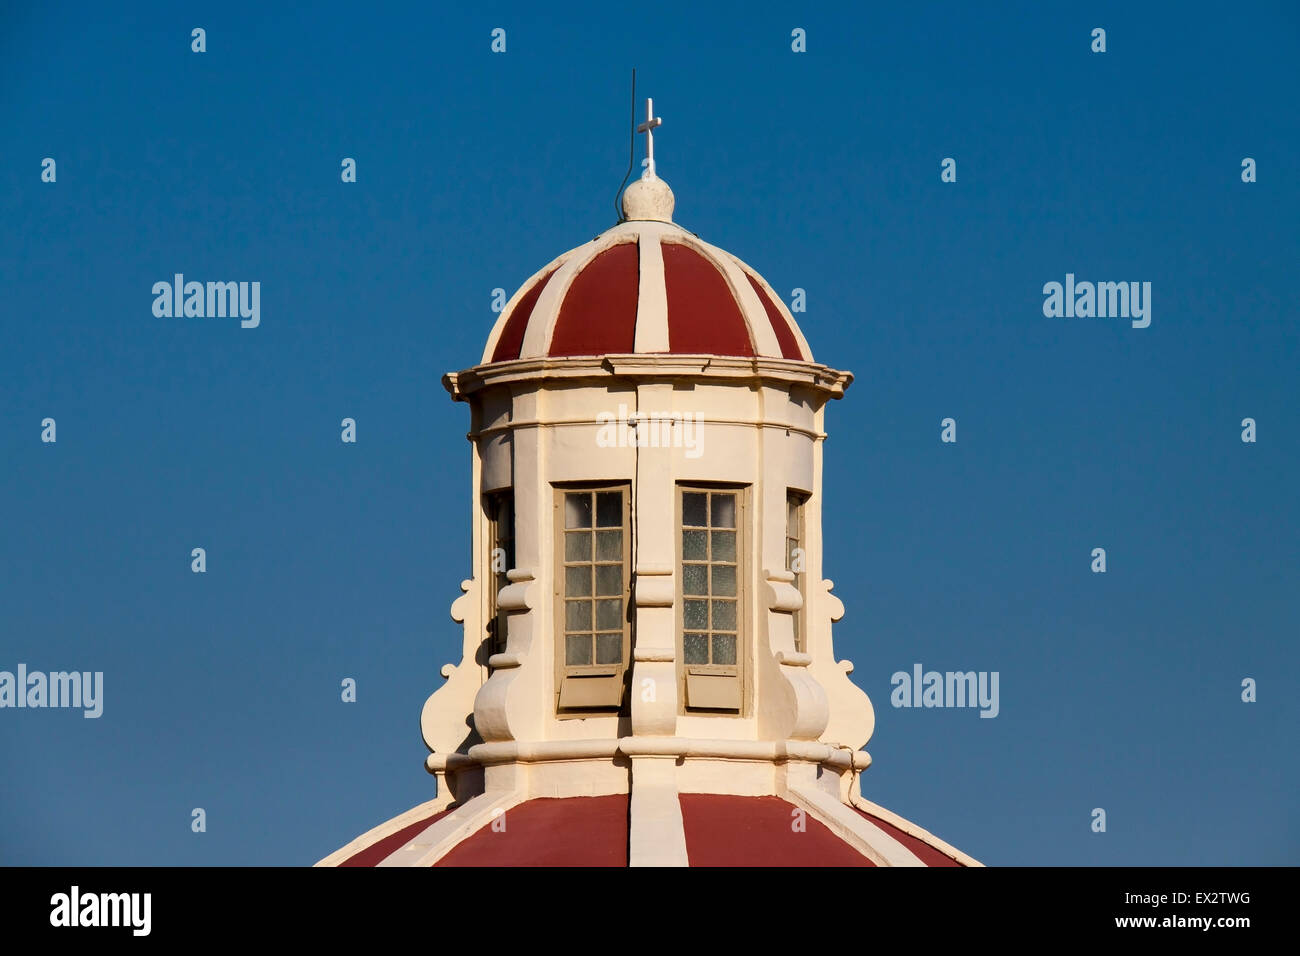 A bright church cupola against a bright blue sky - Stock Image